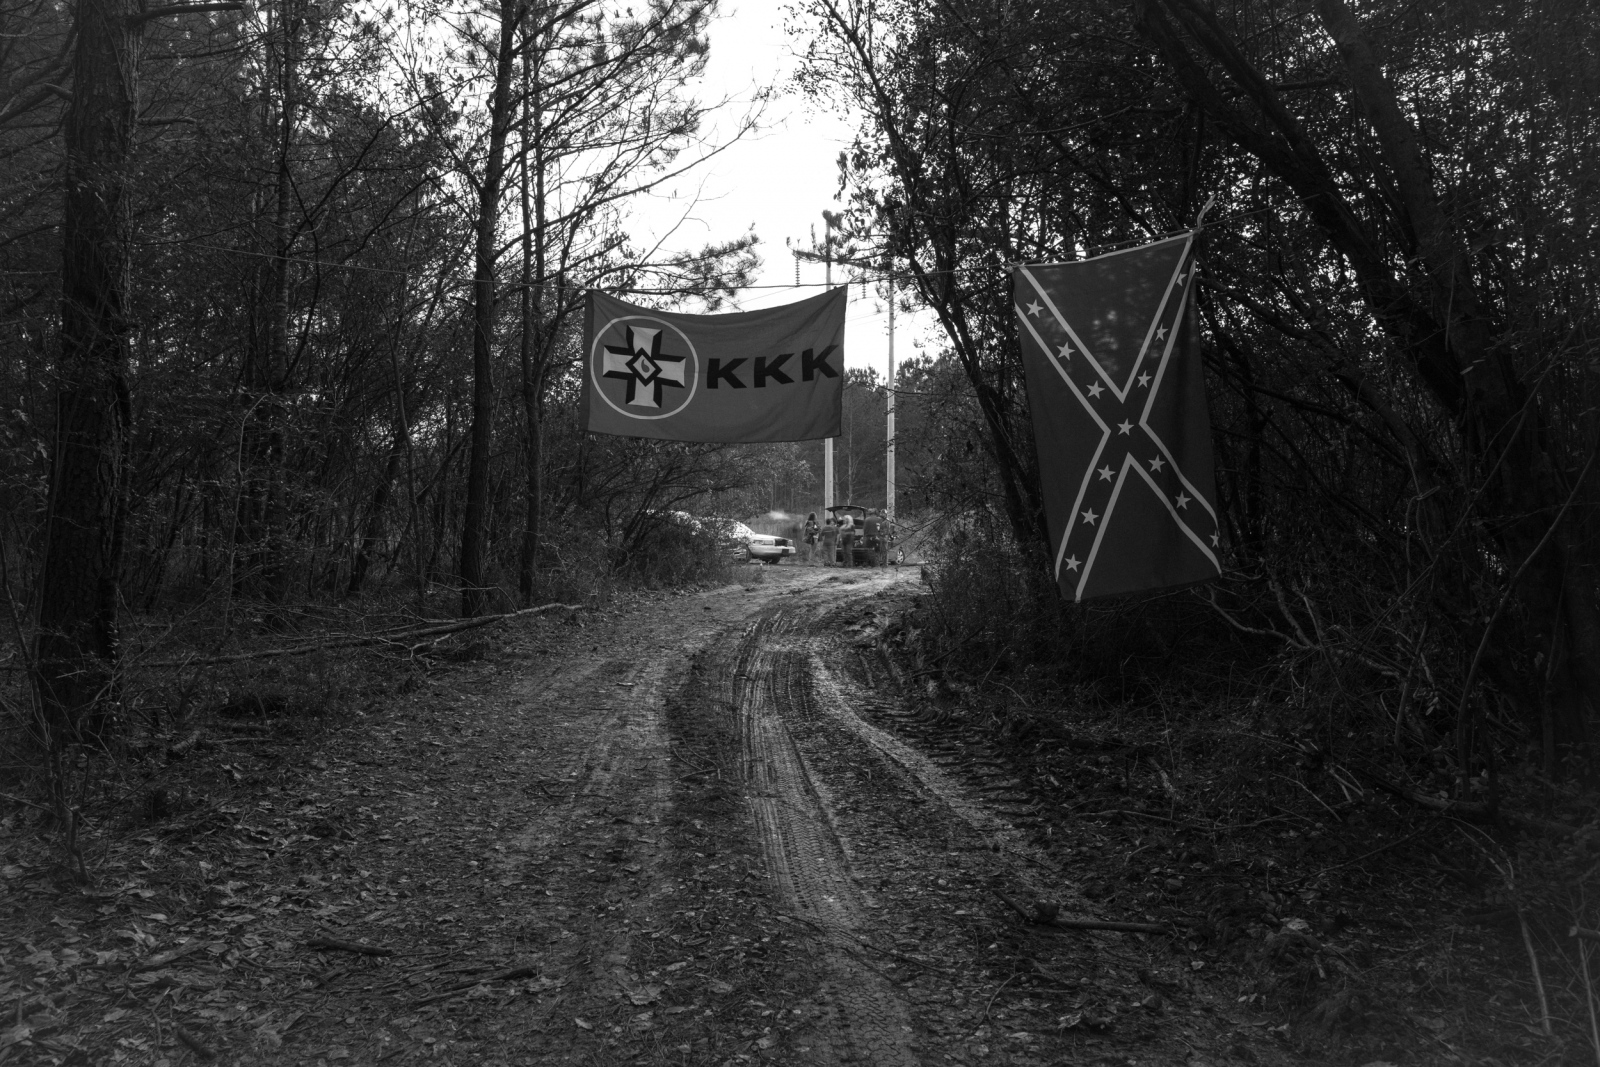 Trion, Georgia.A small impromptu gathering of a newly formed Klan group.